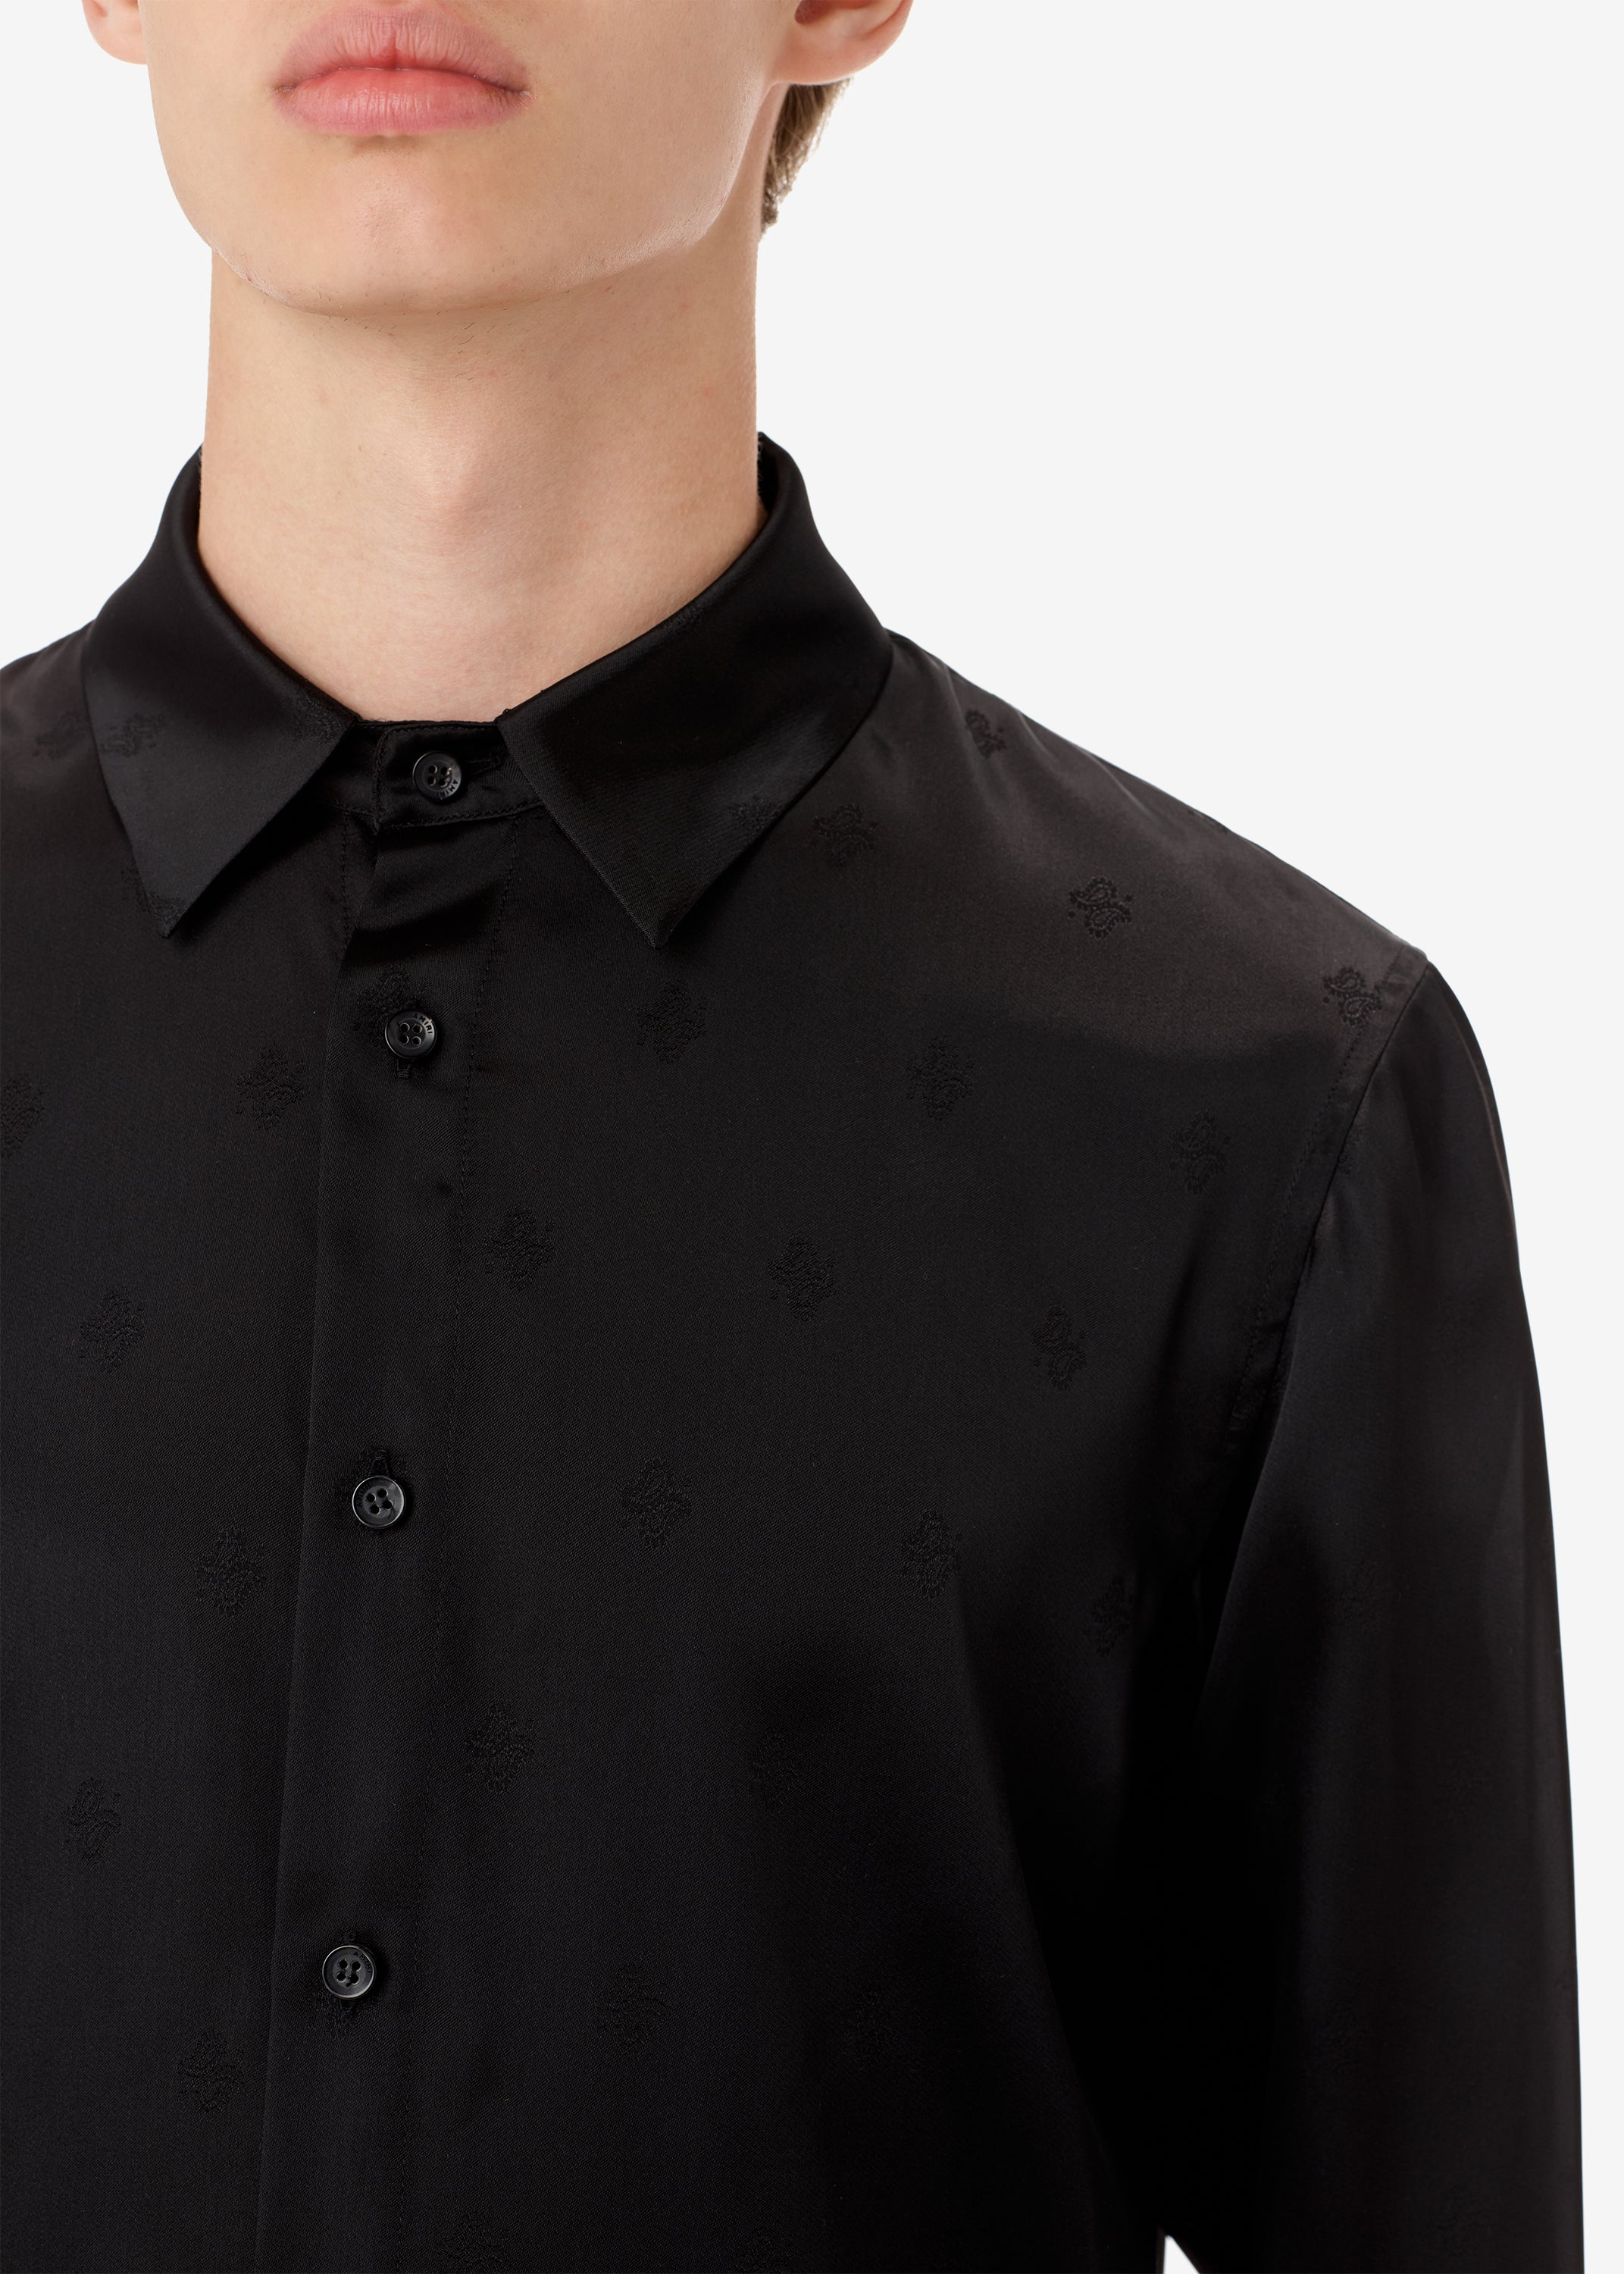 exclusive-micro-paisley-shirt-black-image-3